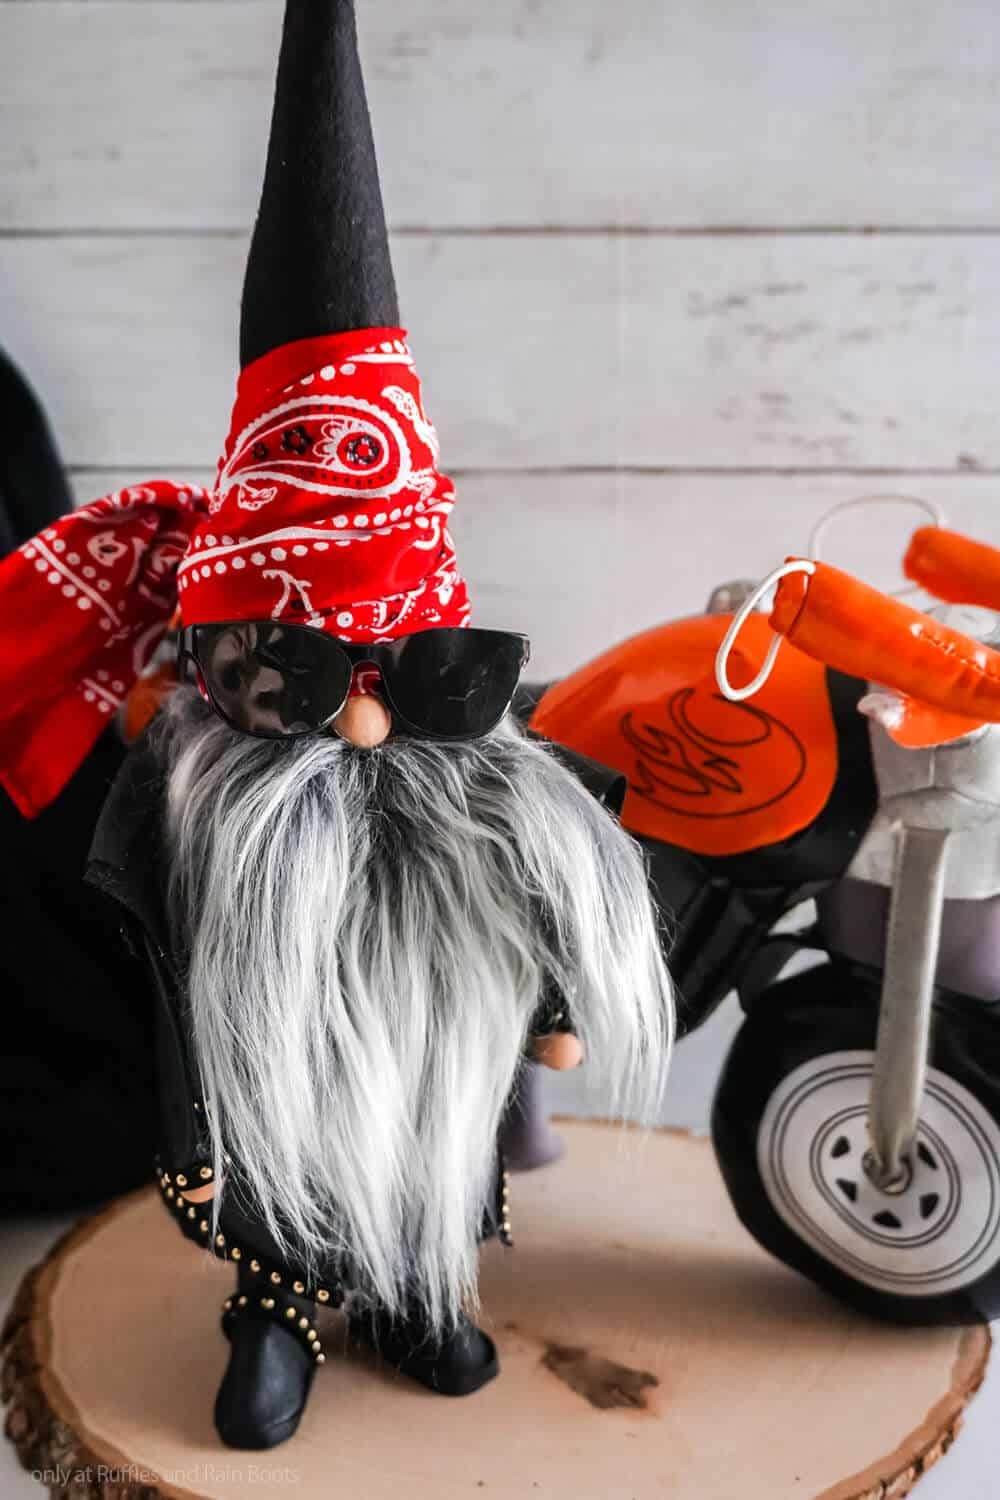 diy cone gnome without sewing with a motorcycle theme